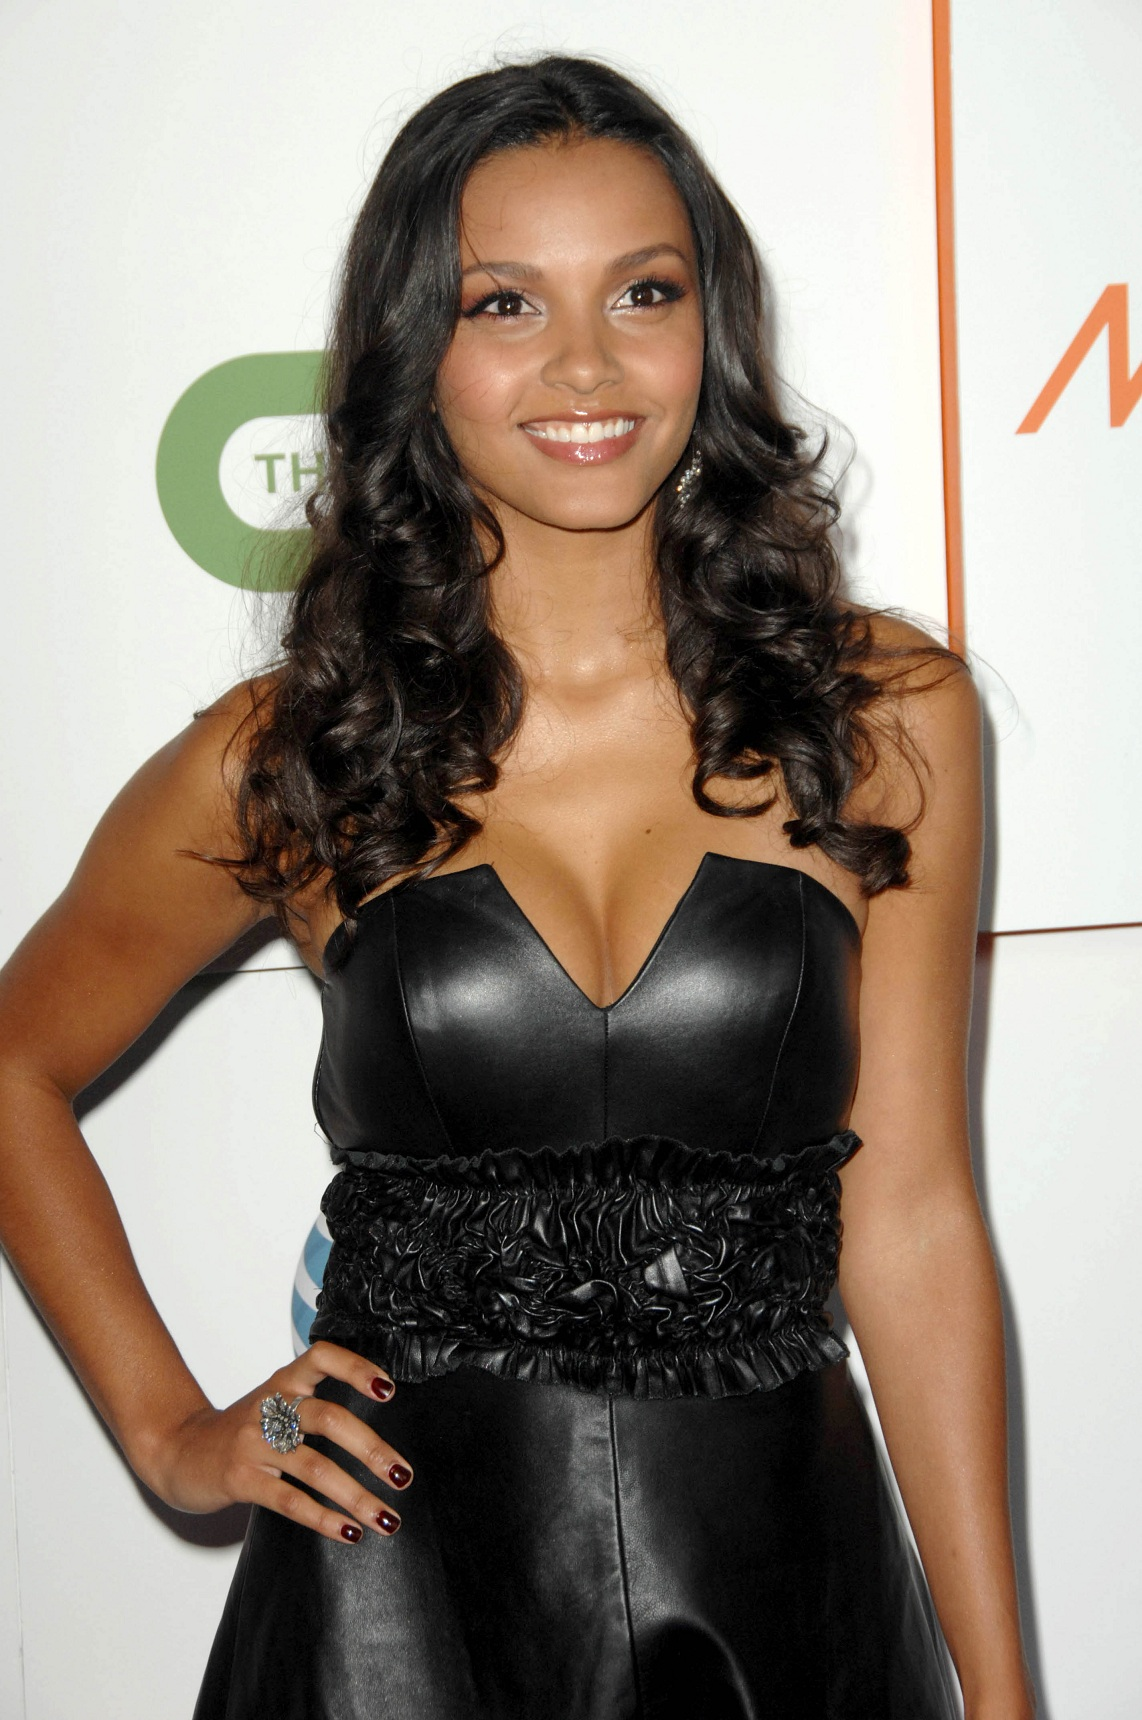 Jessica Lucas Hot Bikini, Boobs And Butt Pictures (49